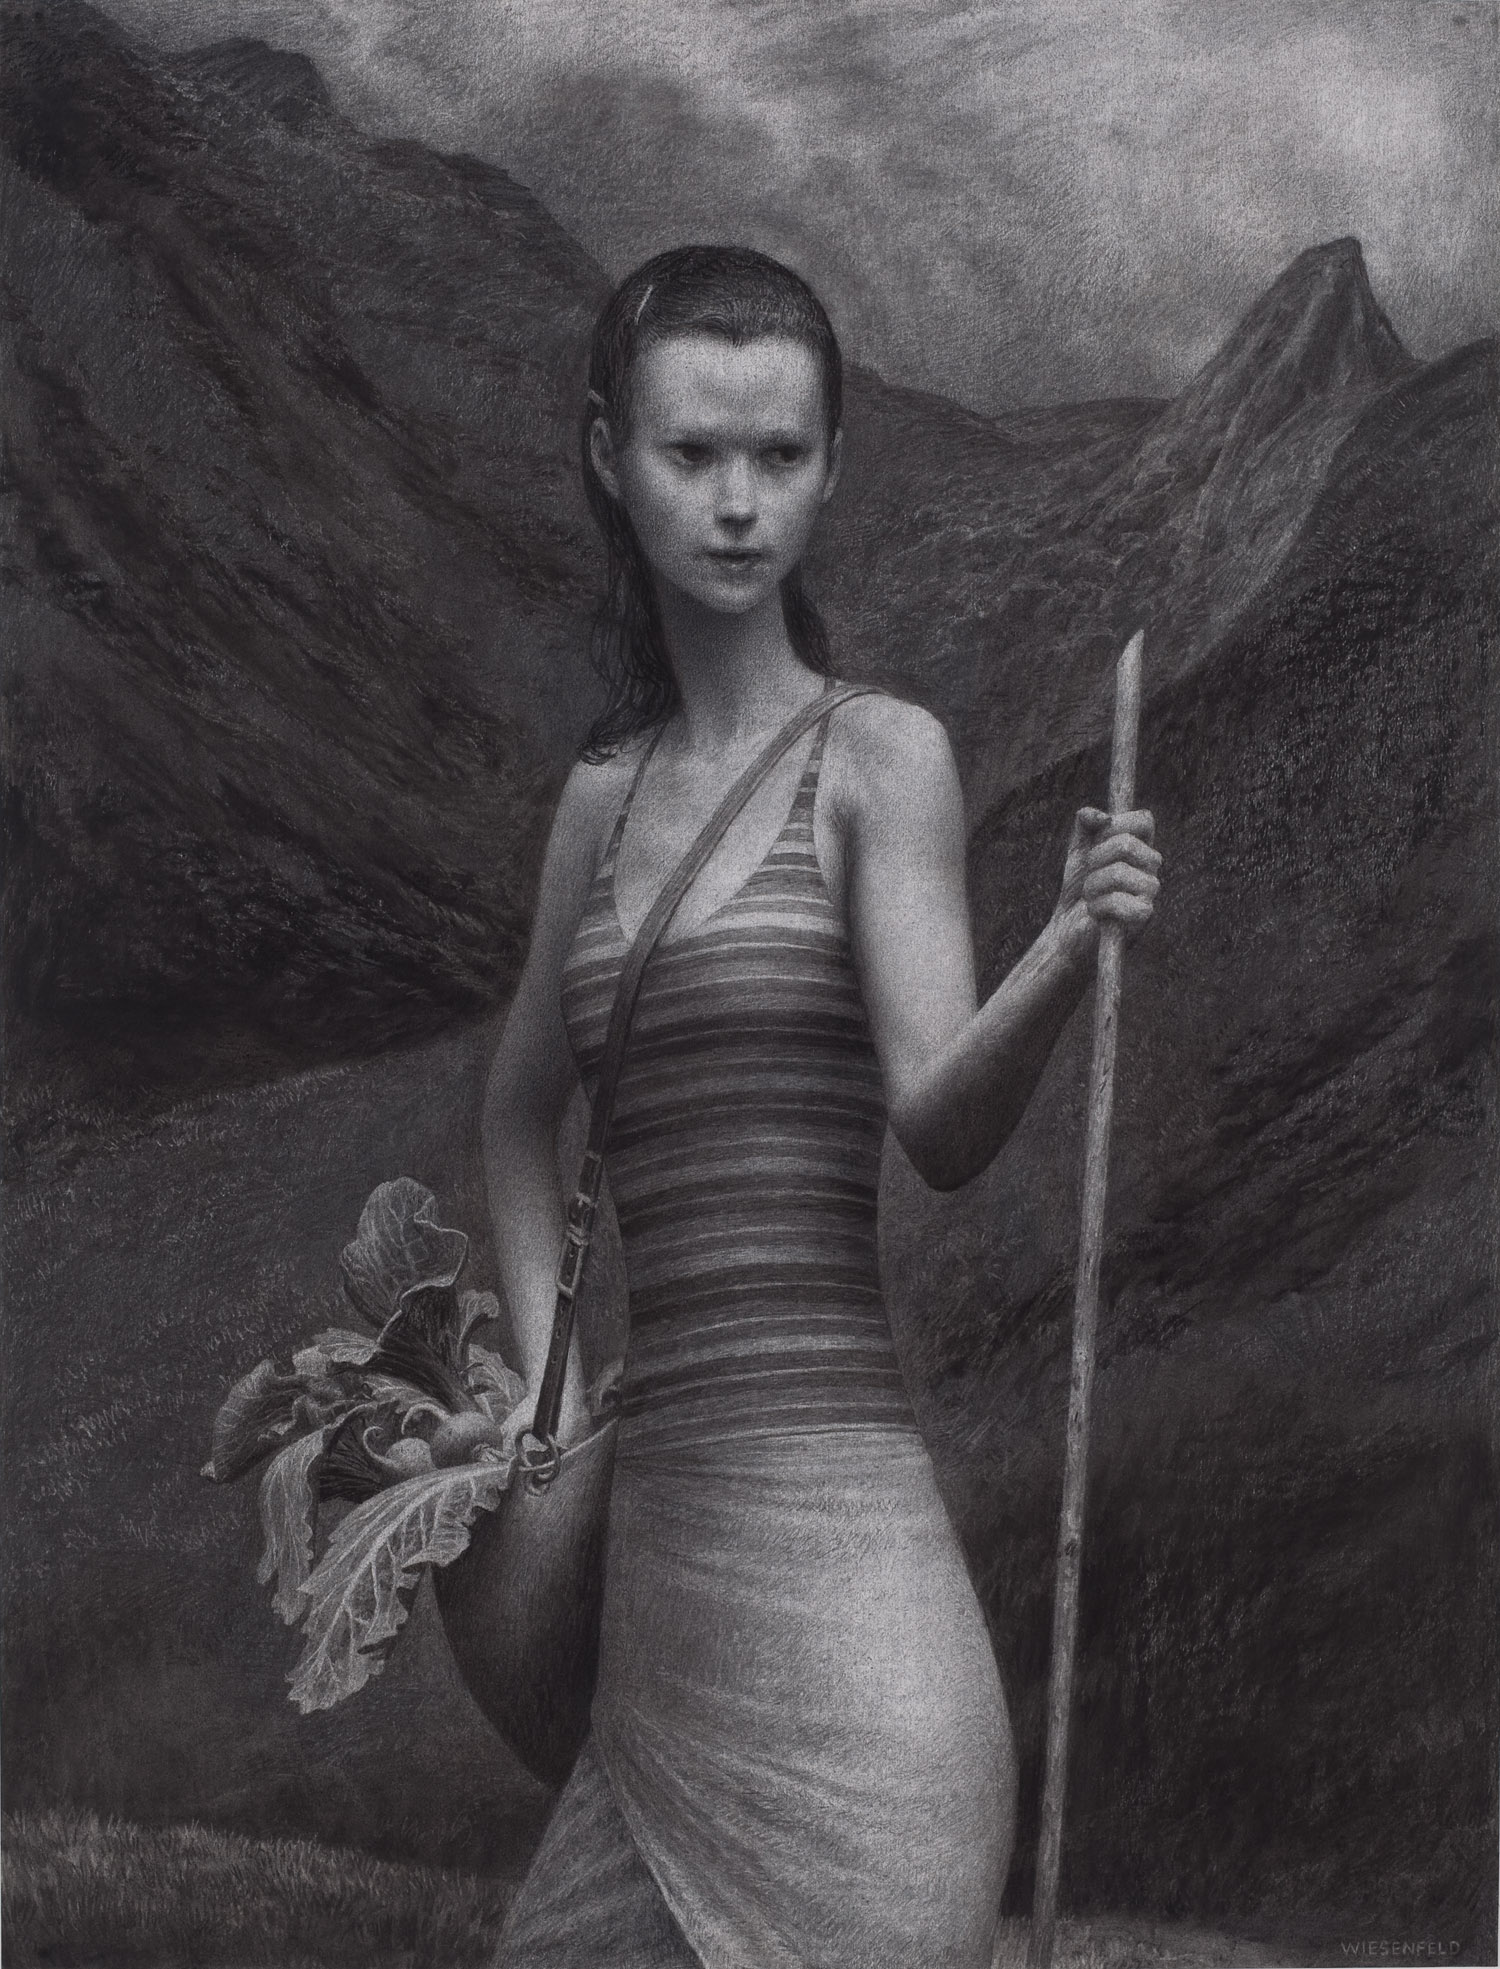 The Gathering, charcoal on paper, 50 x 38 in / 127 x 97 cm, 2009